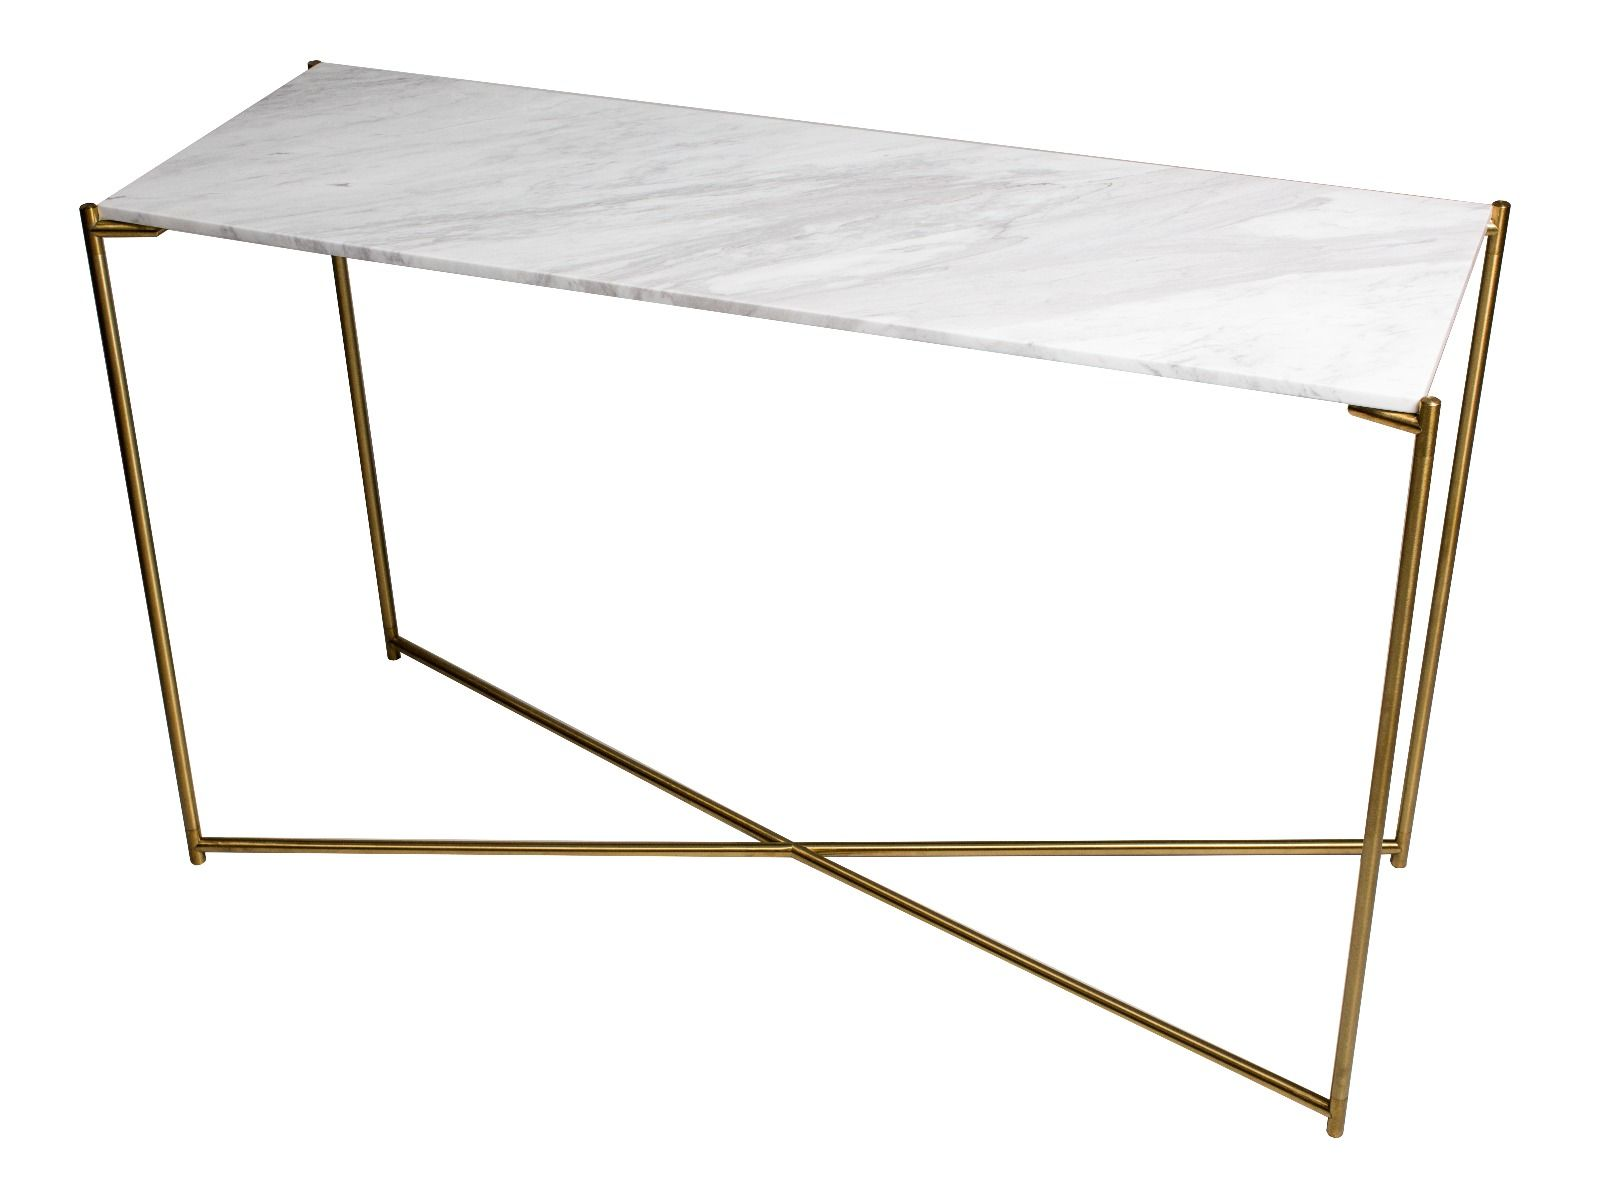 Super Large Console Table Gmtry Best Dining Table And Chair Ideas Images Gmtryco